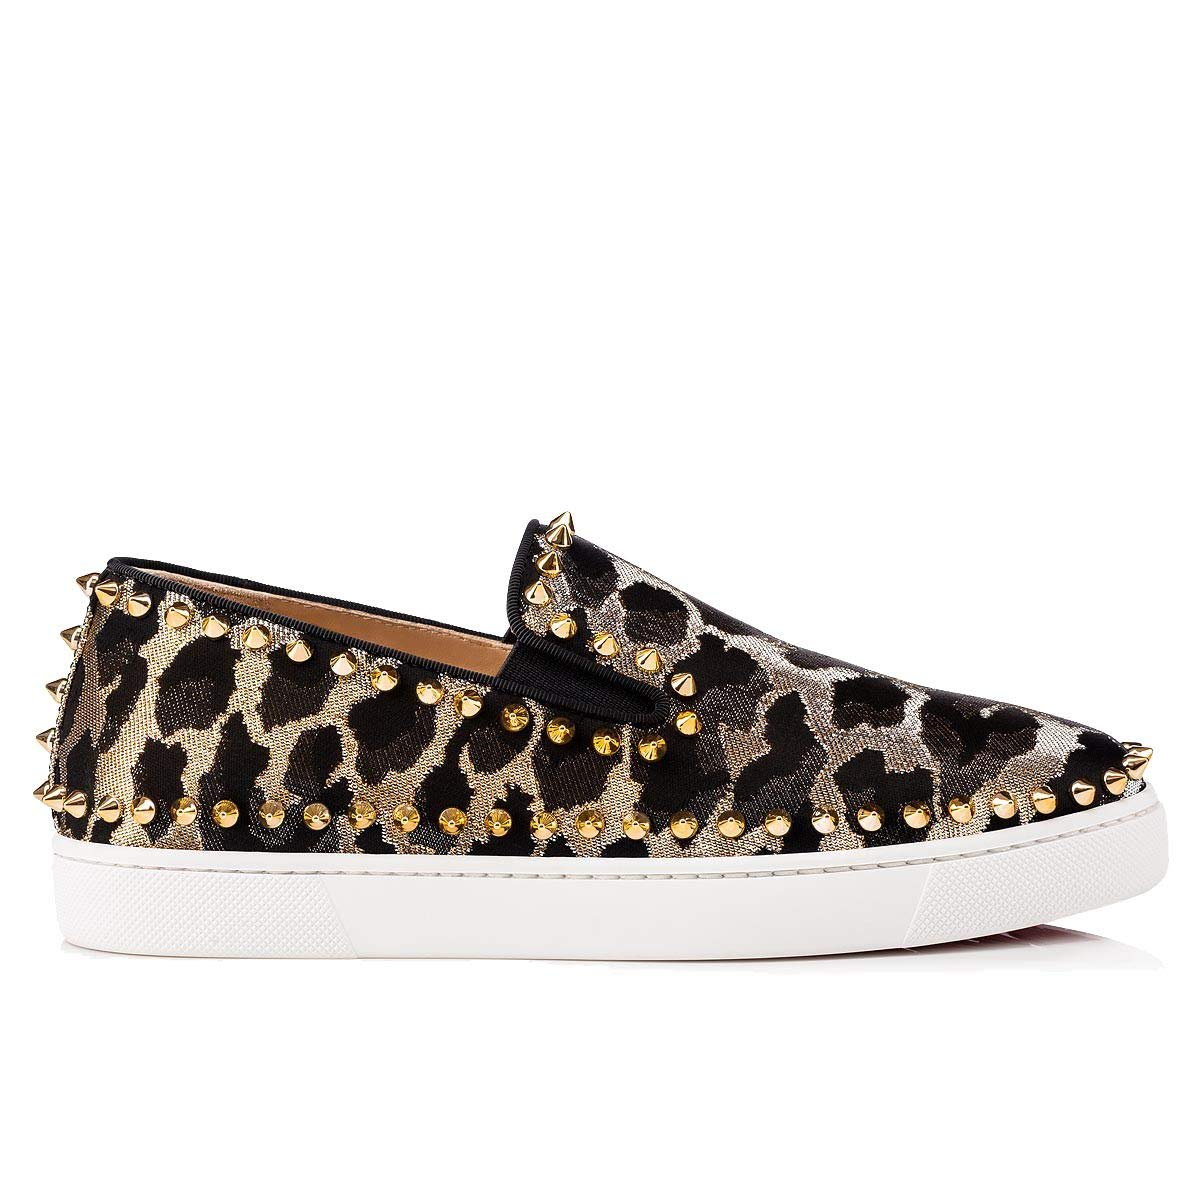 Christian Louboutin Femme 3180673Cm6s Or Cuir Chaussures De Skate